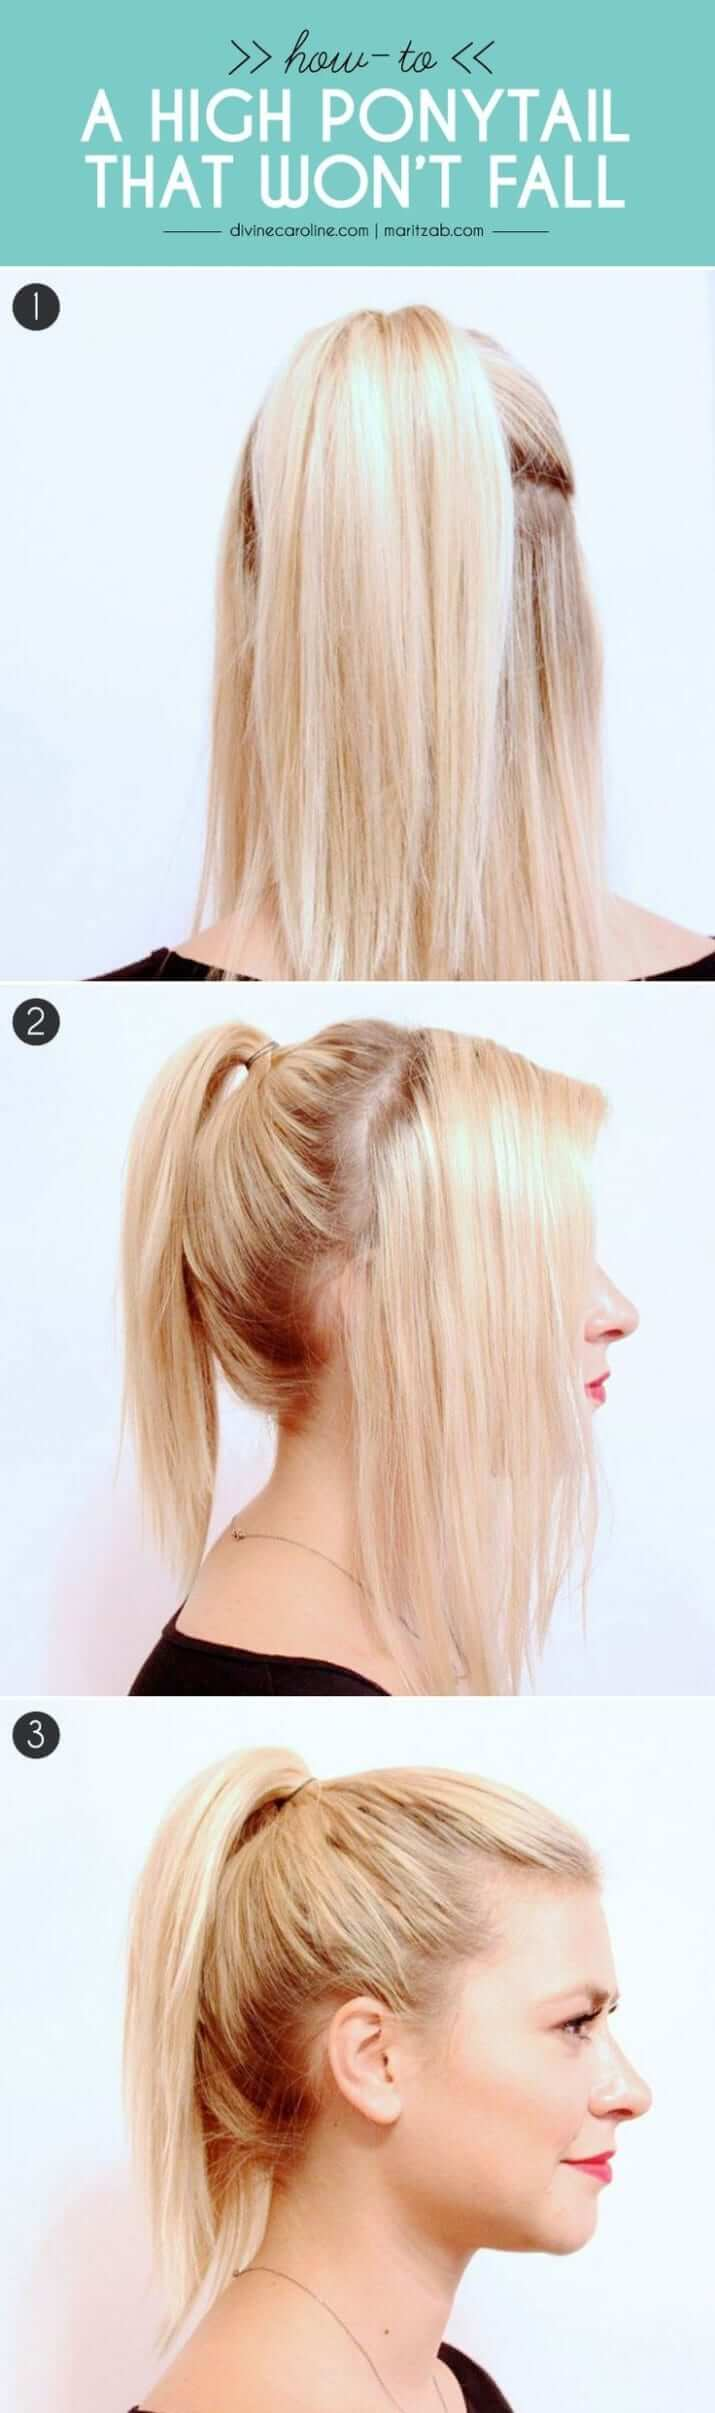 Stay Put High Ponytail Tutorial